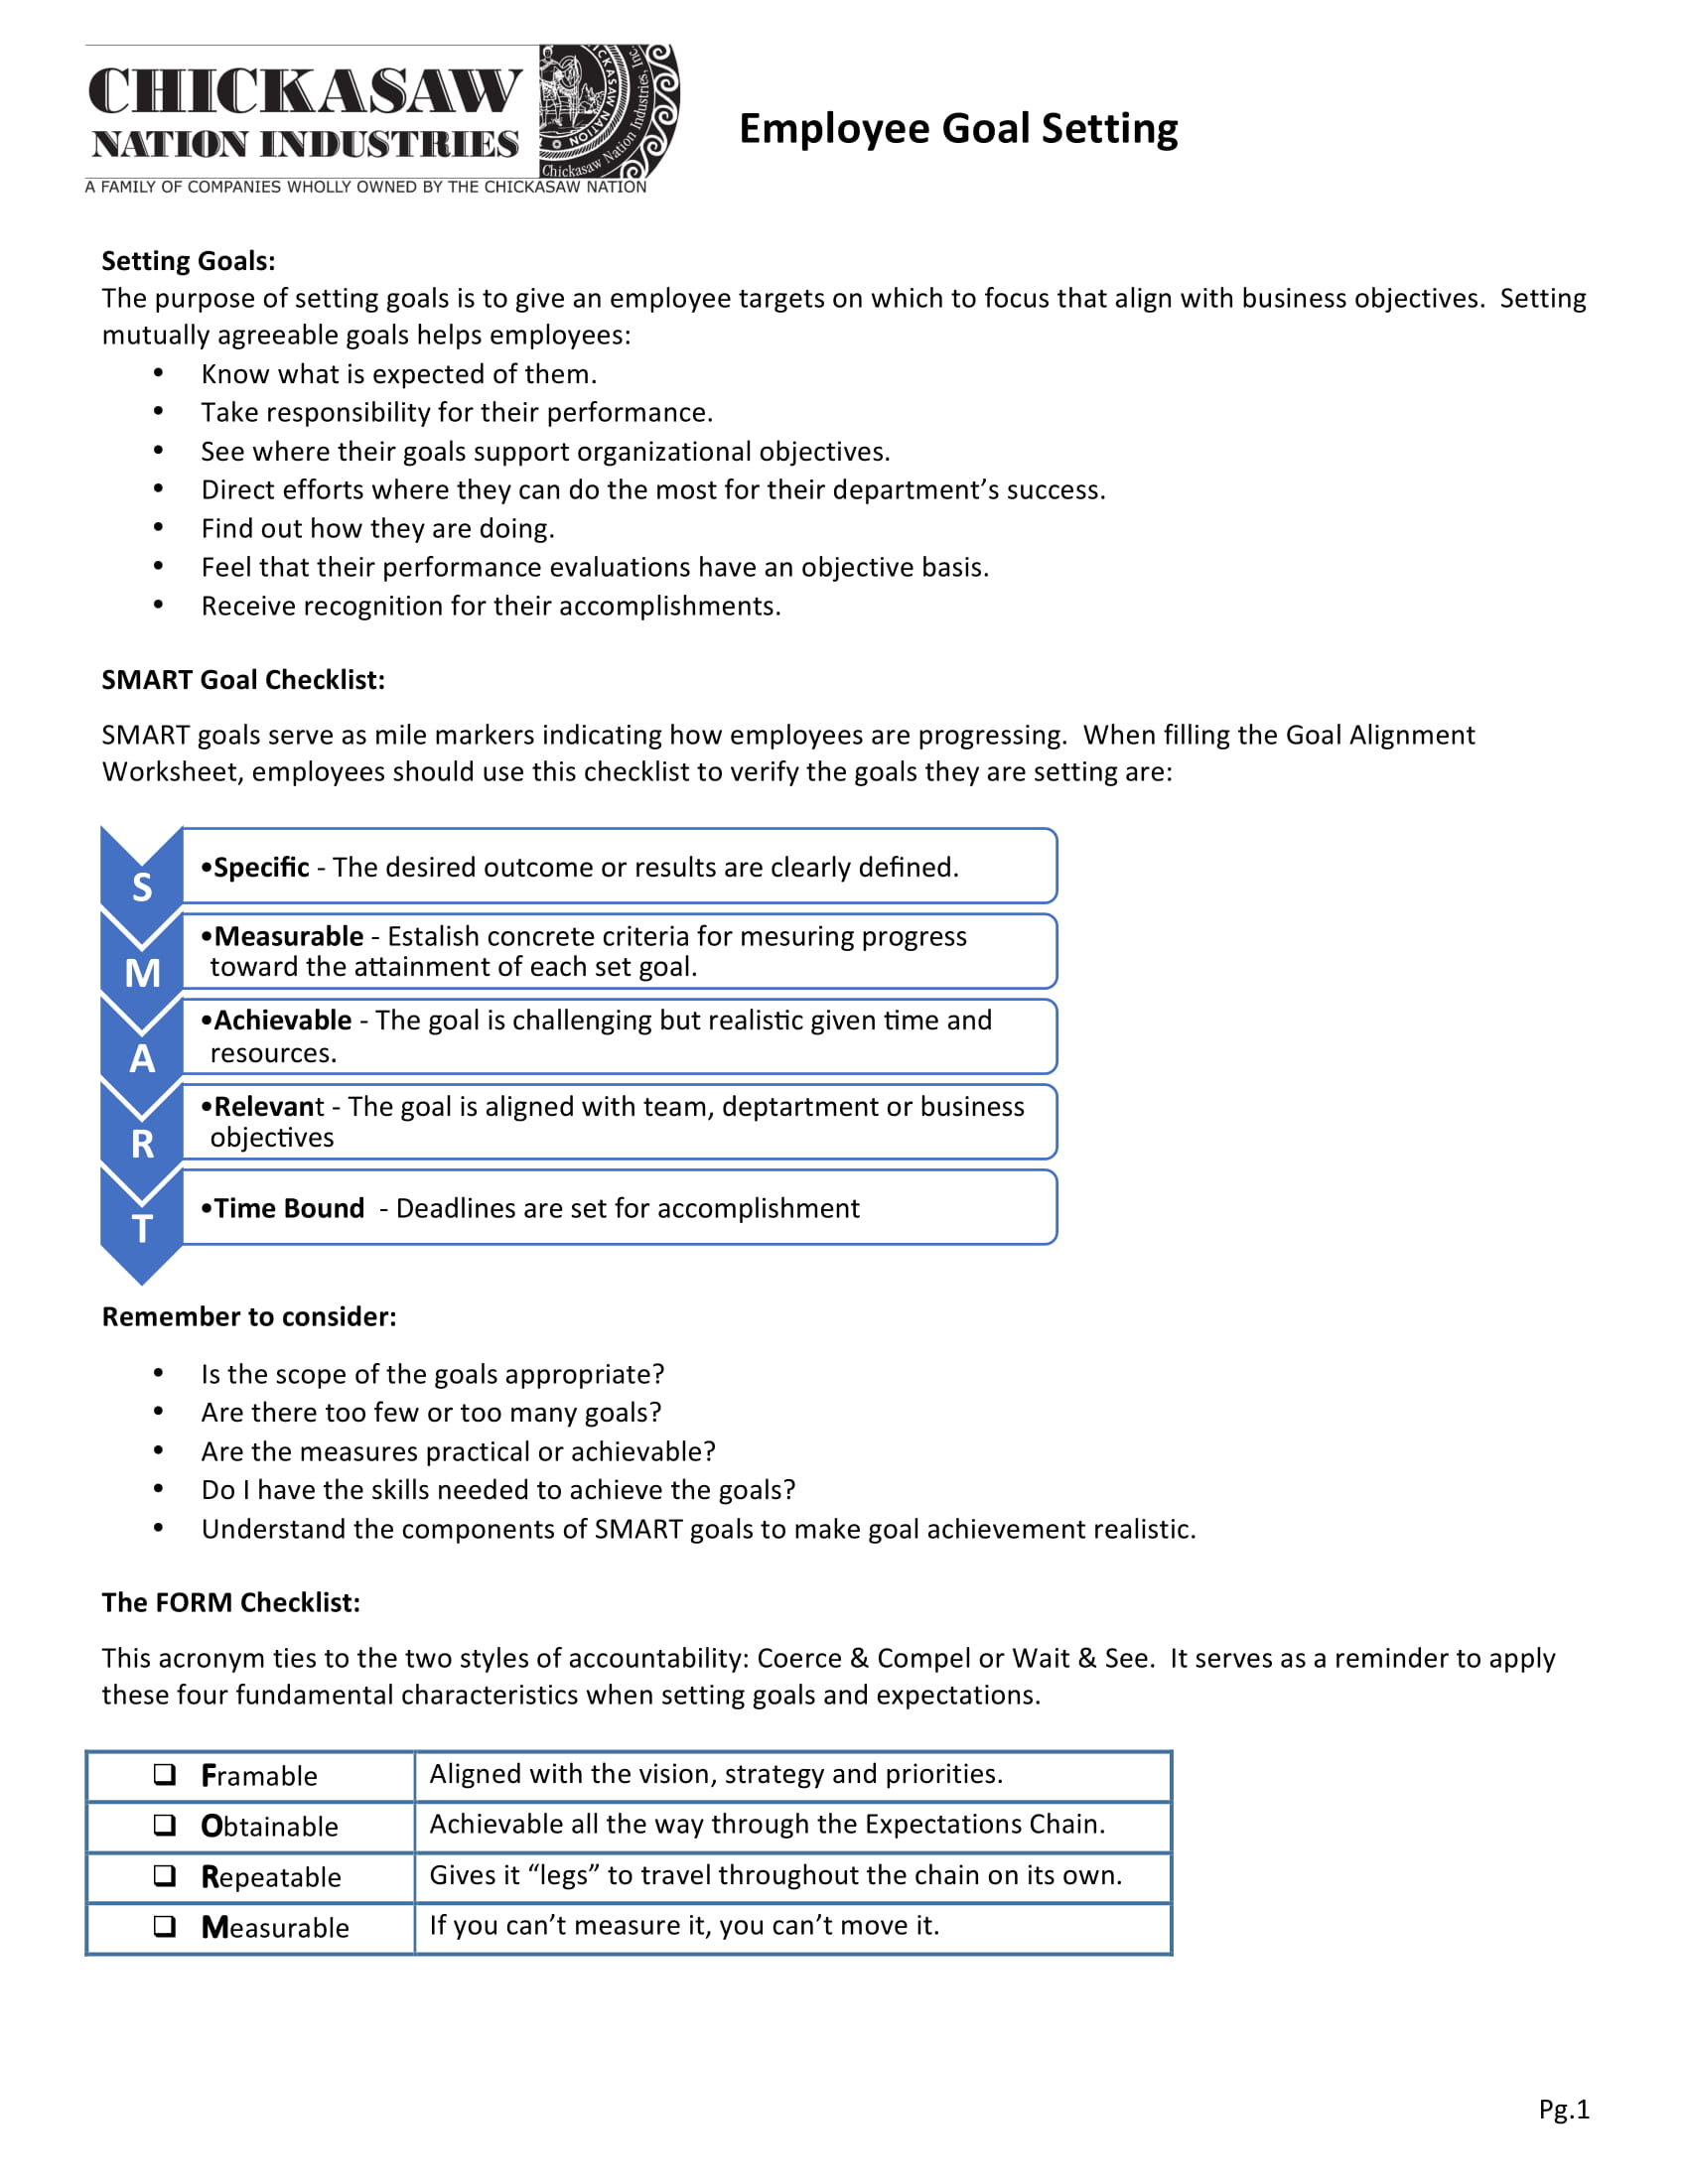 employee goal setting alignment worksheet example